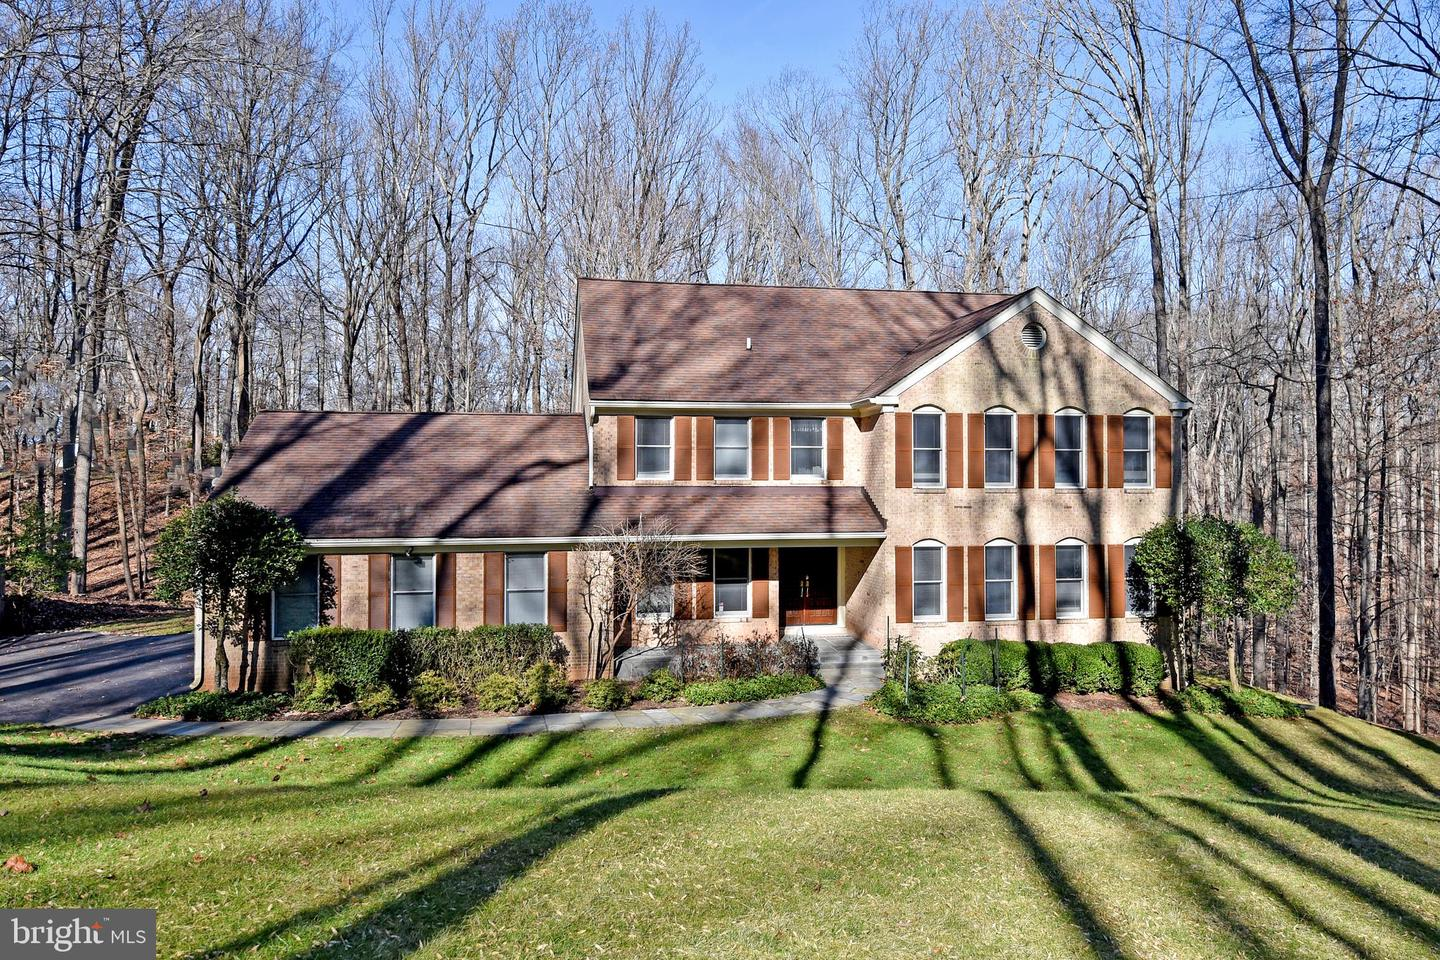 10021 NEW LONDON DRIVE, POTOMAC, Maryland